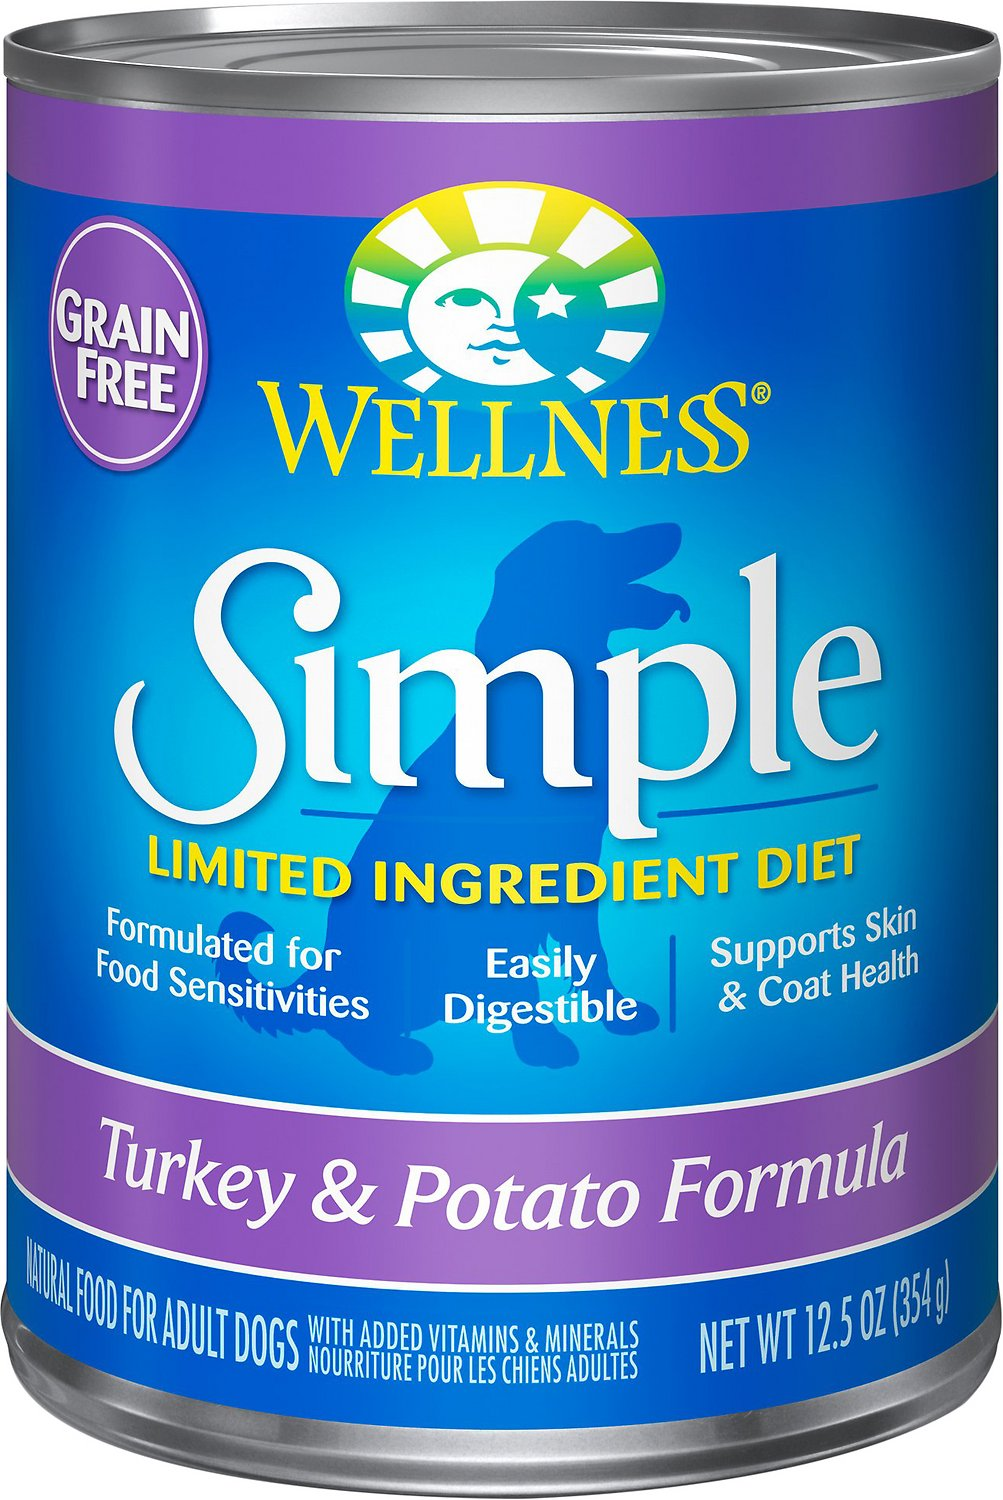 Wellness Simple Limited Ingredient Diet Grain-Free Turkey & Potato Formula Canned Dog Food, 12.5-oz